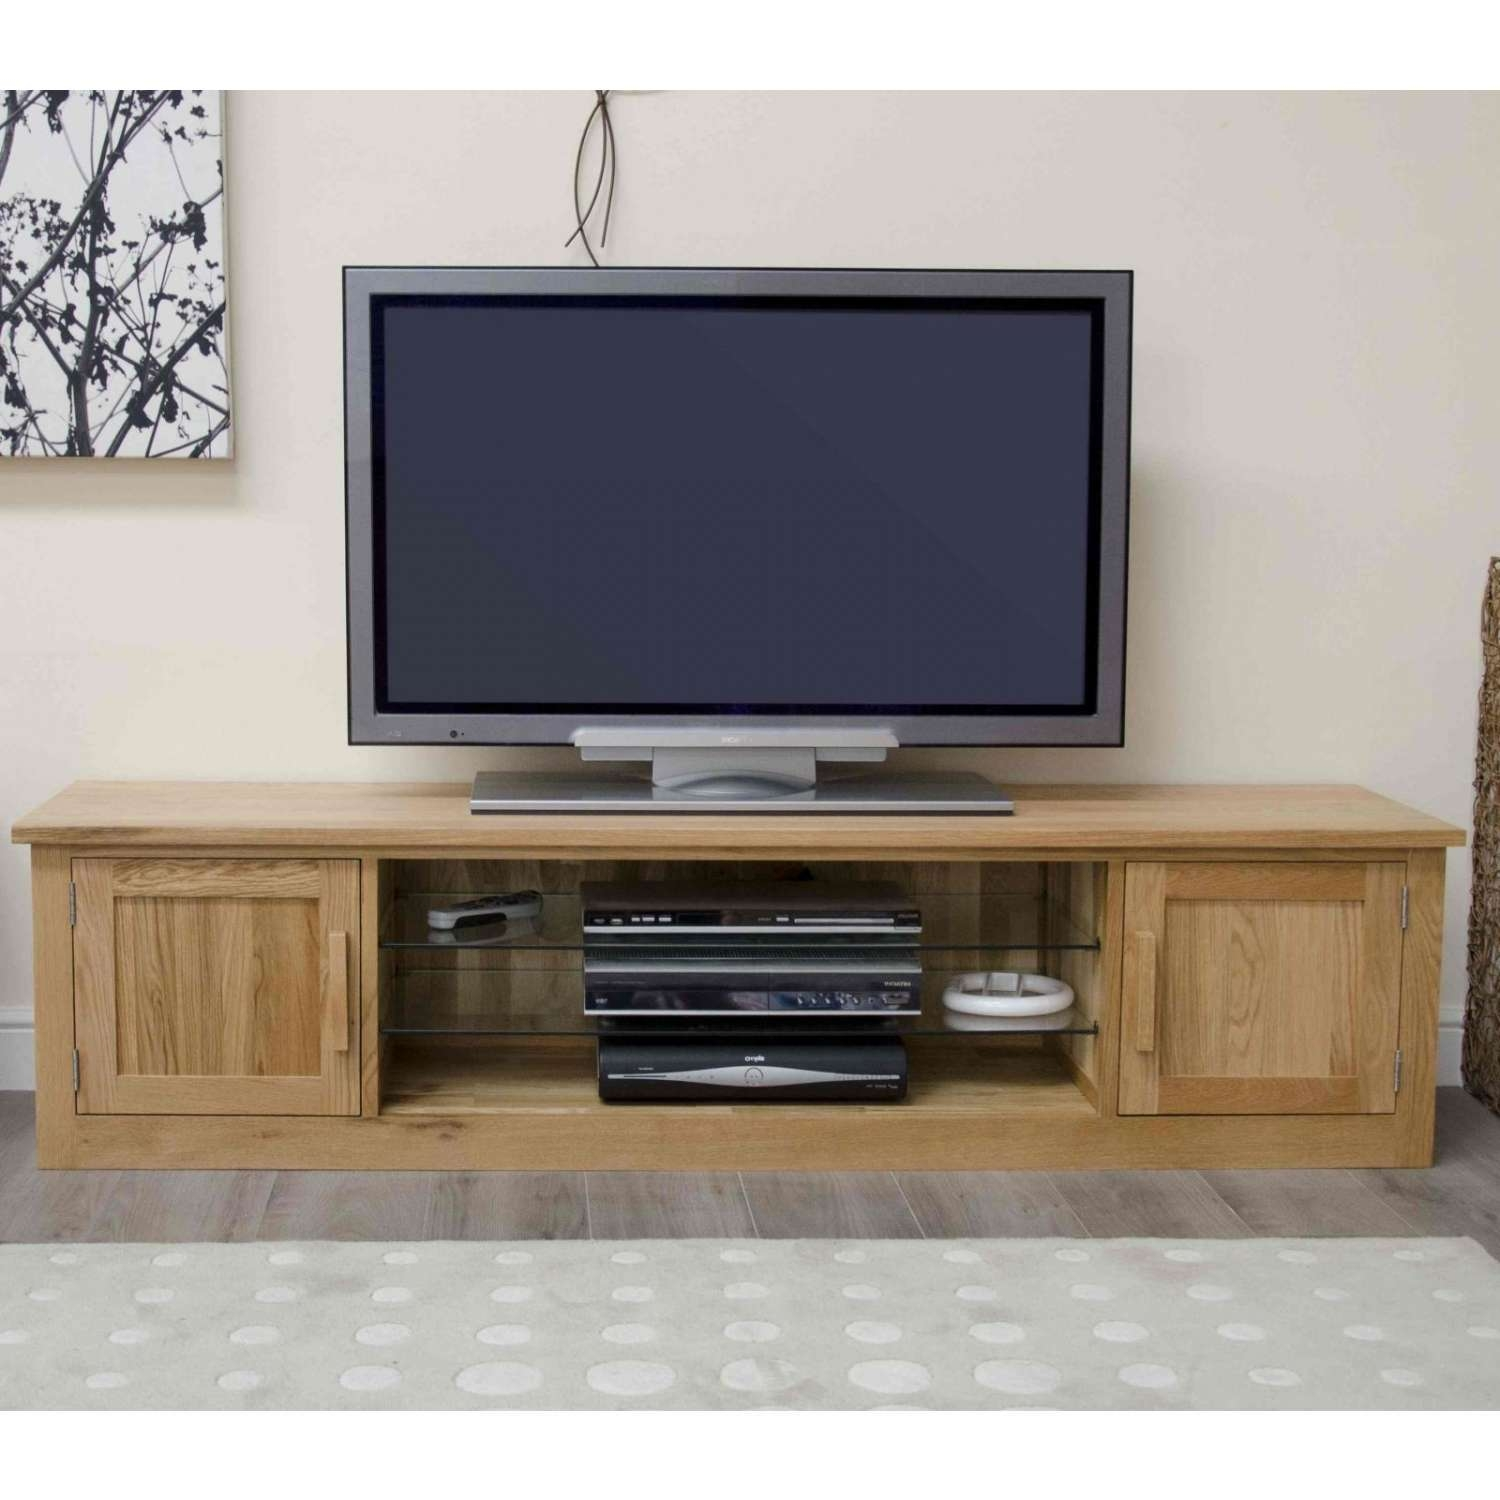 Arden Solid Oak Living Room Furniture Large Widescreen Tv Cabinet Inside Widescreen Tv Cabinets (View 7 of 20)